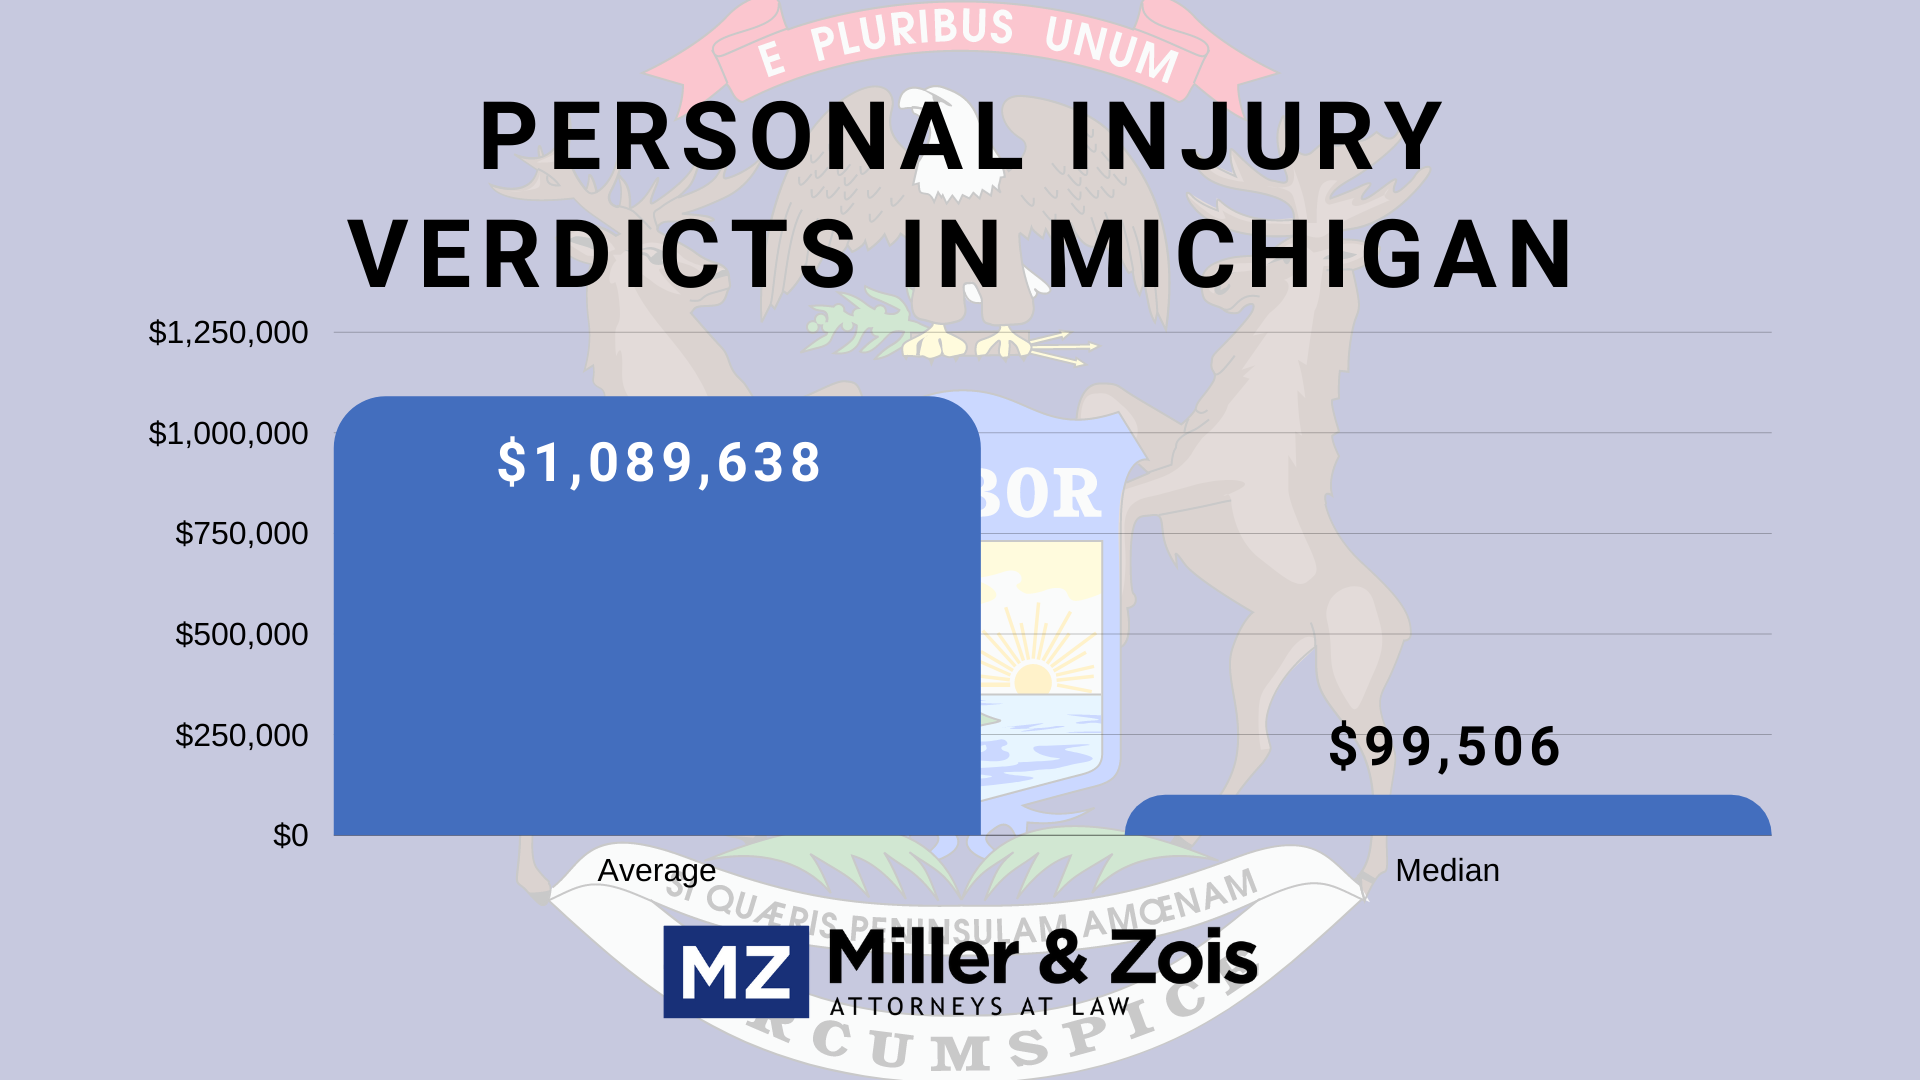 Michigan personal injury verdicts